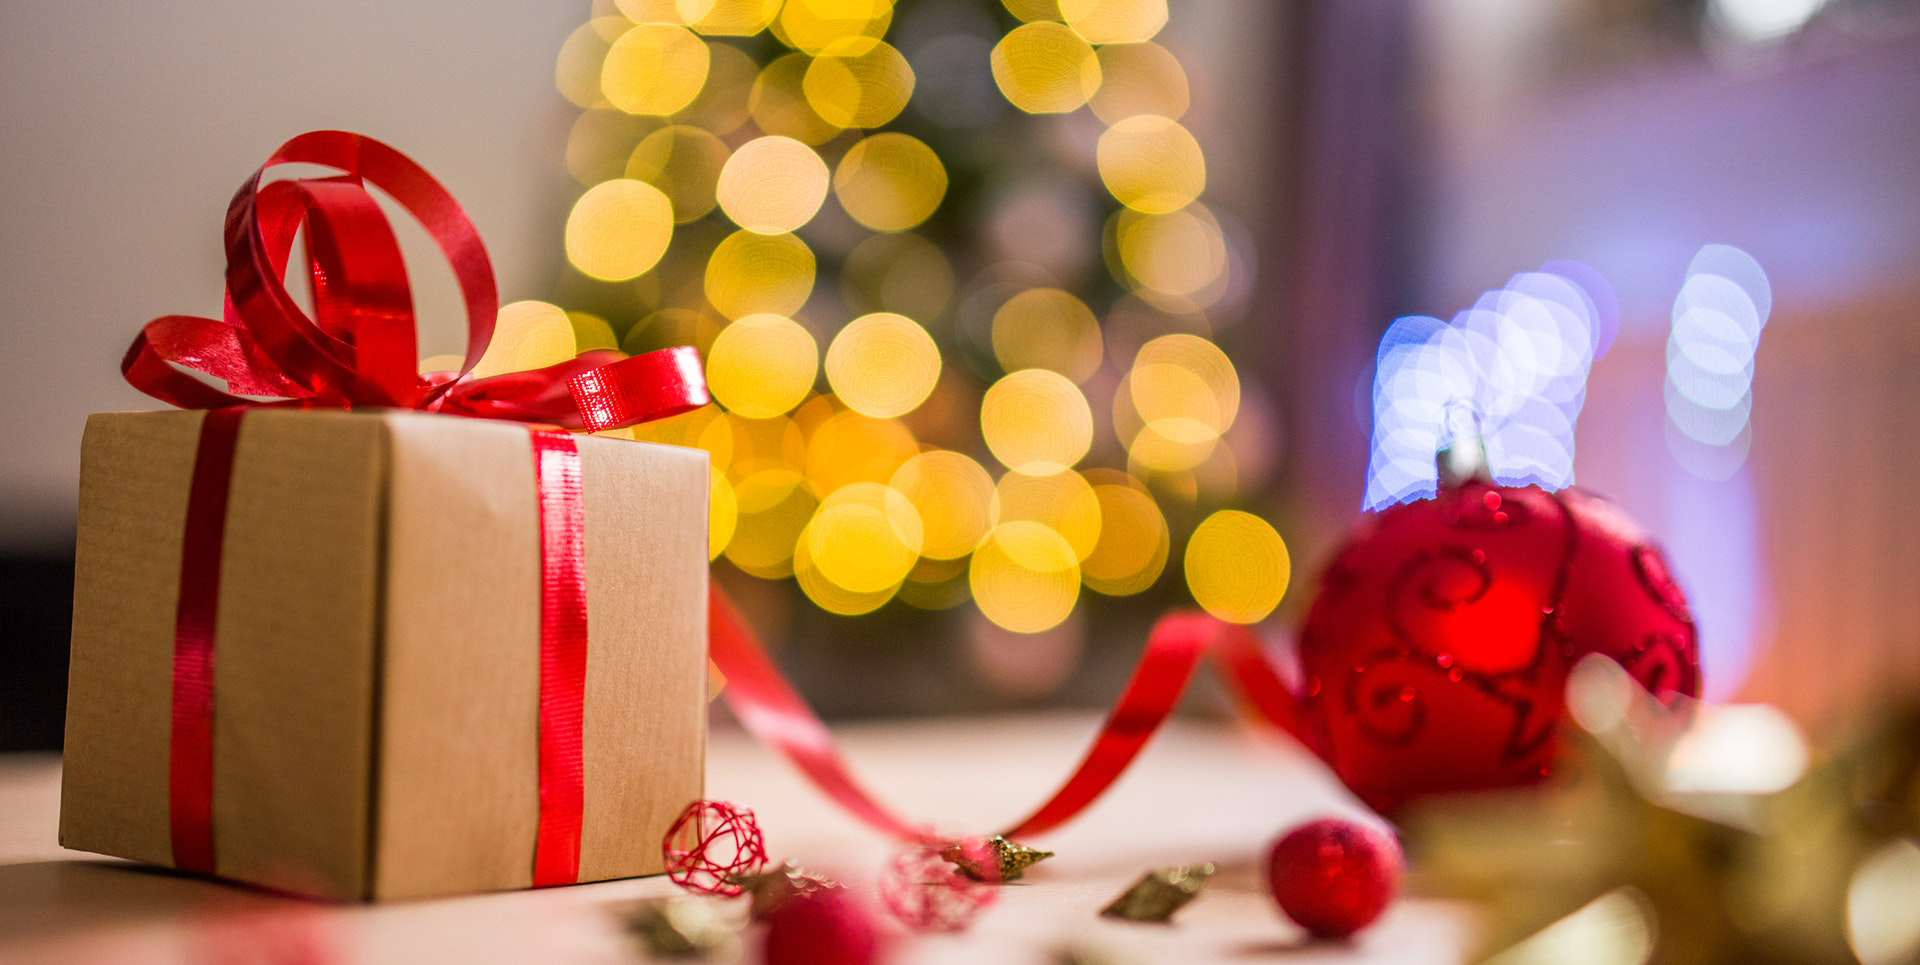 7 Awesome Websites For Your Christmas Shopping Digital Six